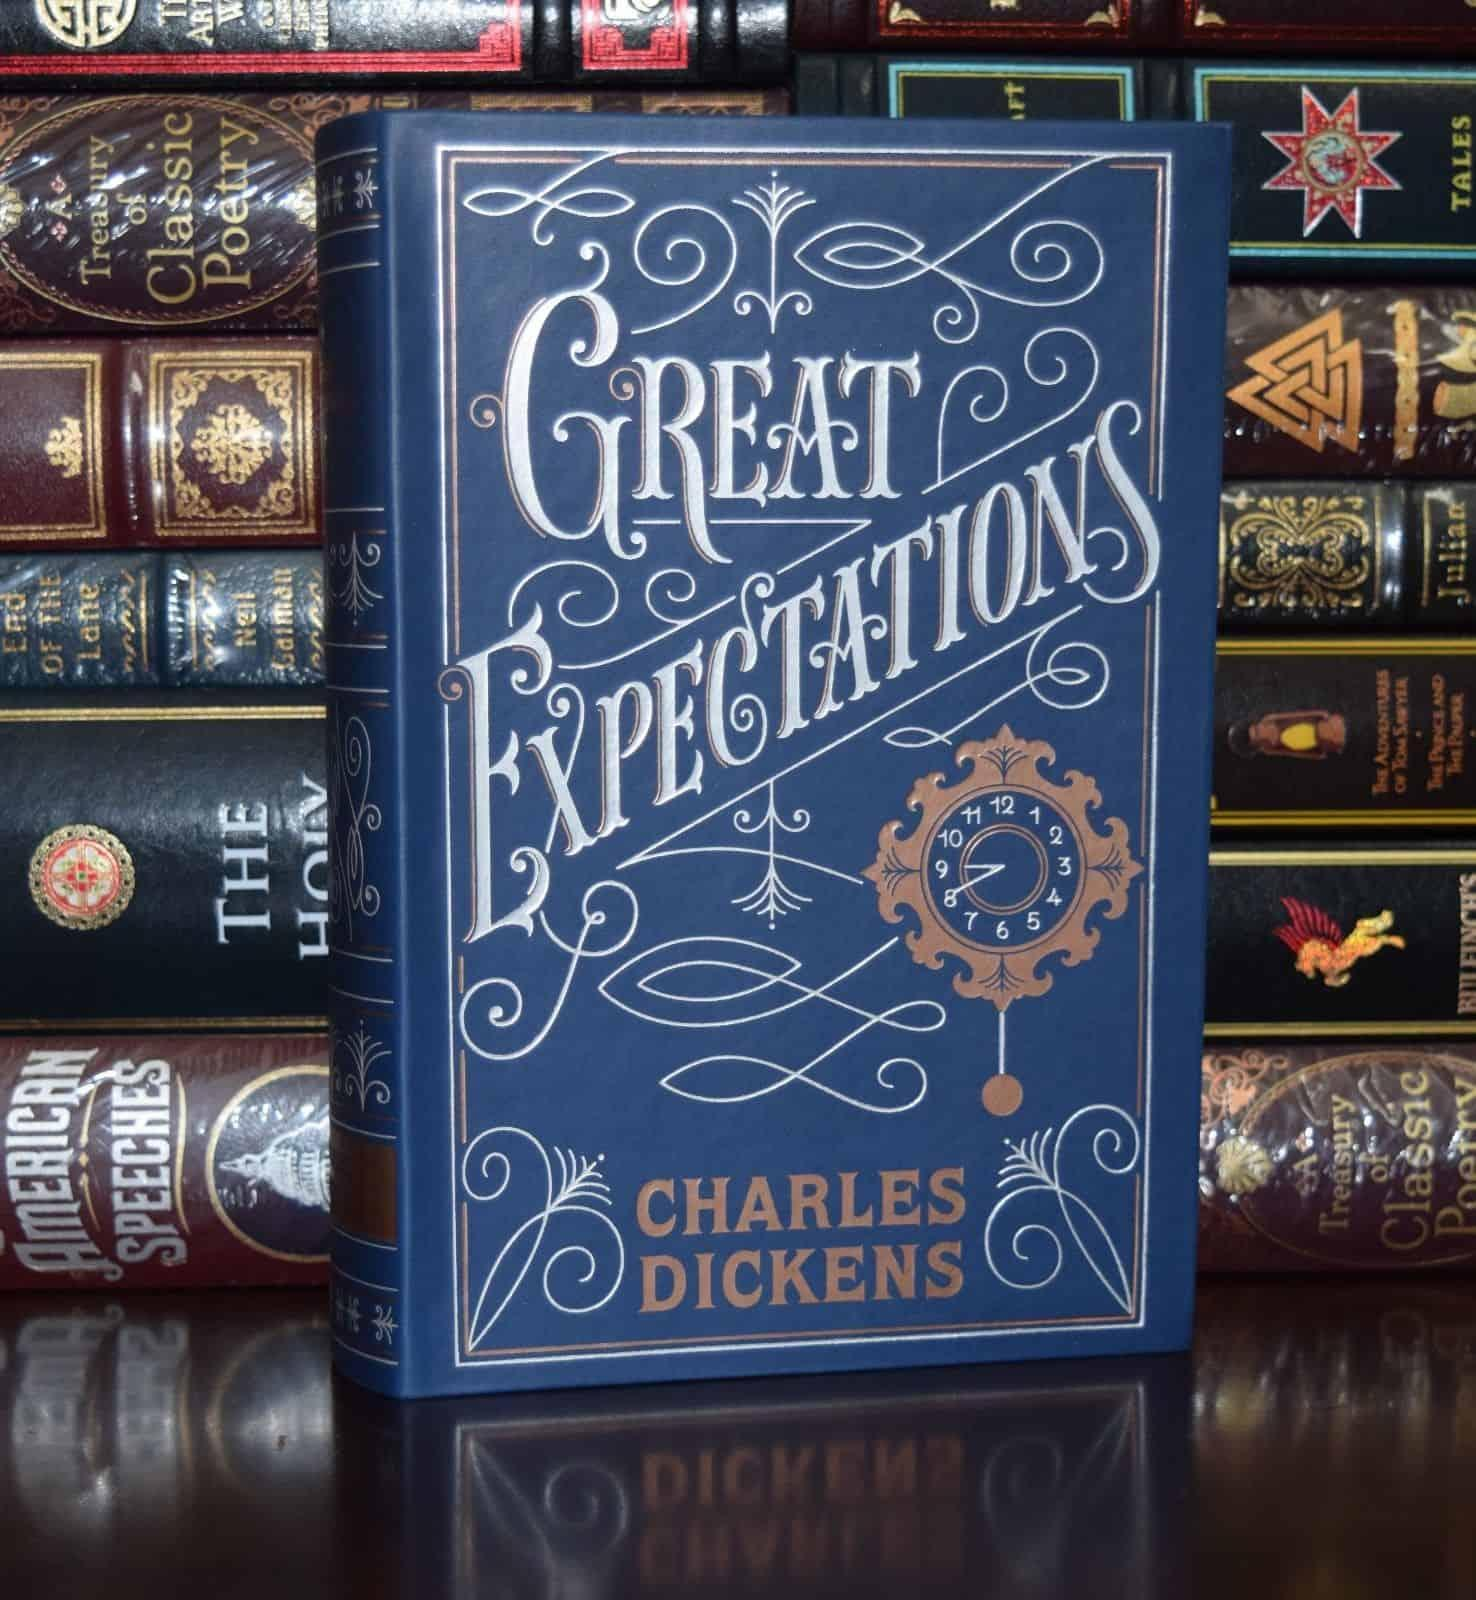 Great Expectations Charles Dickens Classics